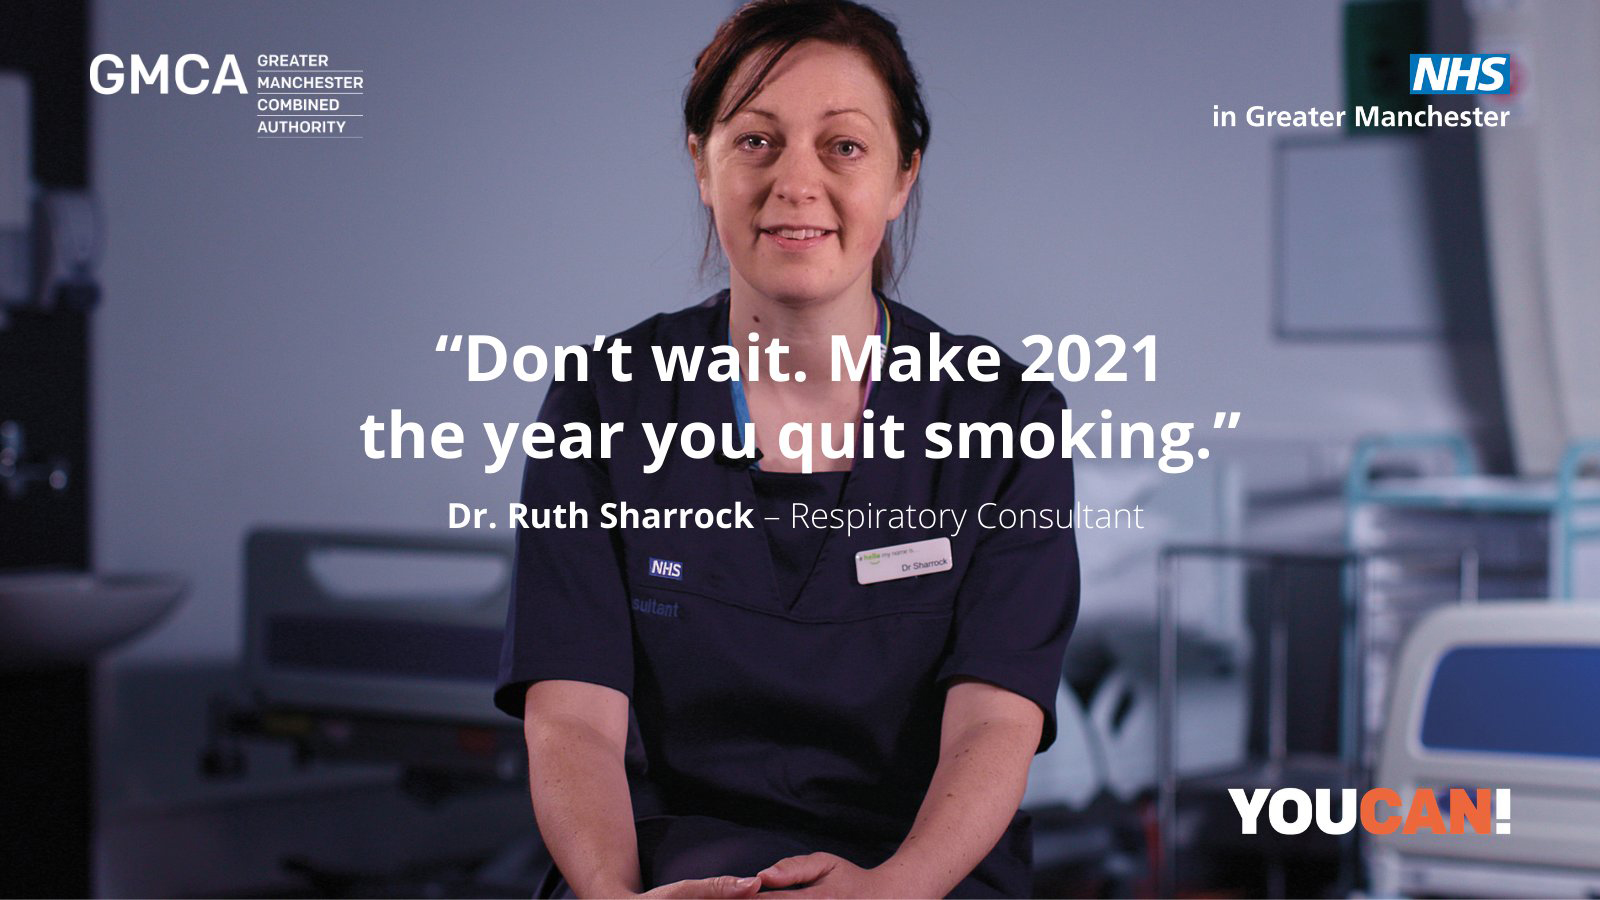 """""""Don't wait. Make 2021 the year you quit smoking"""". Dr Ruth Sharrock, respiratory consultant"""